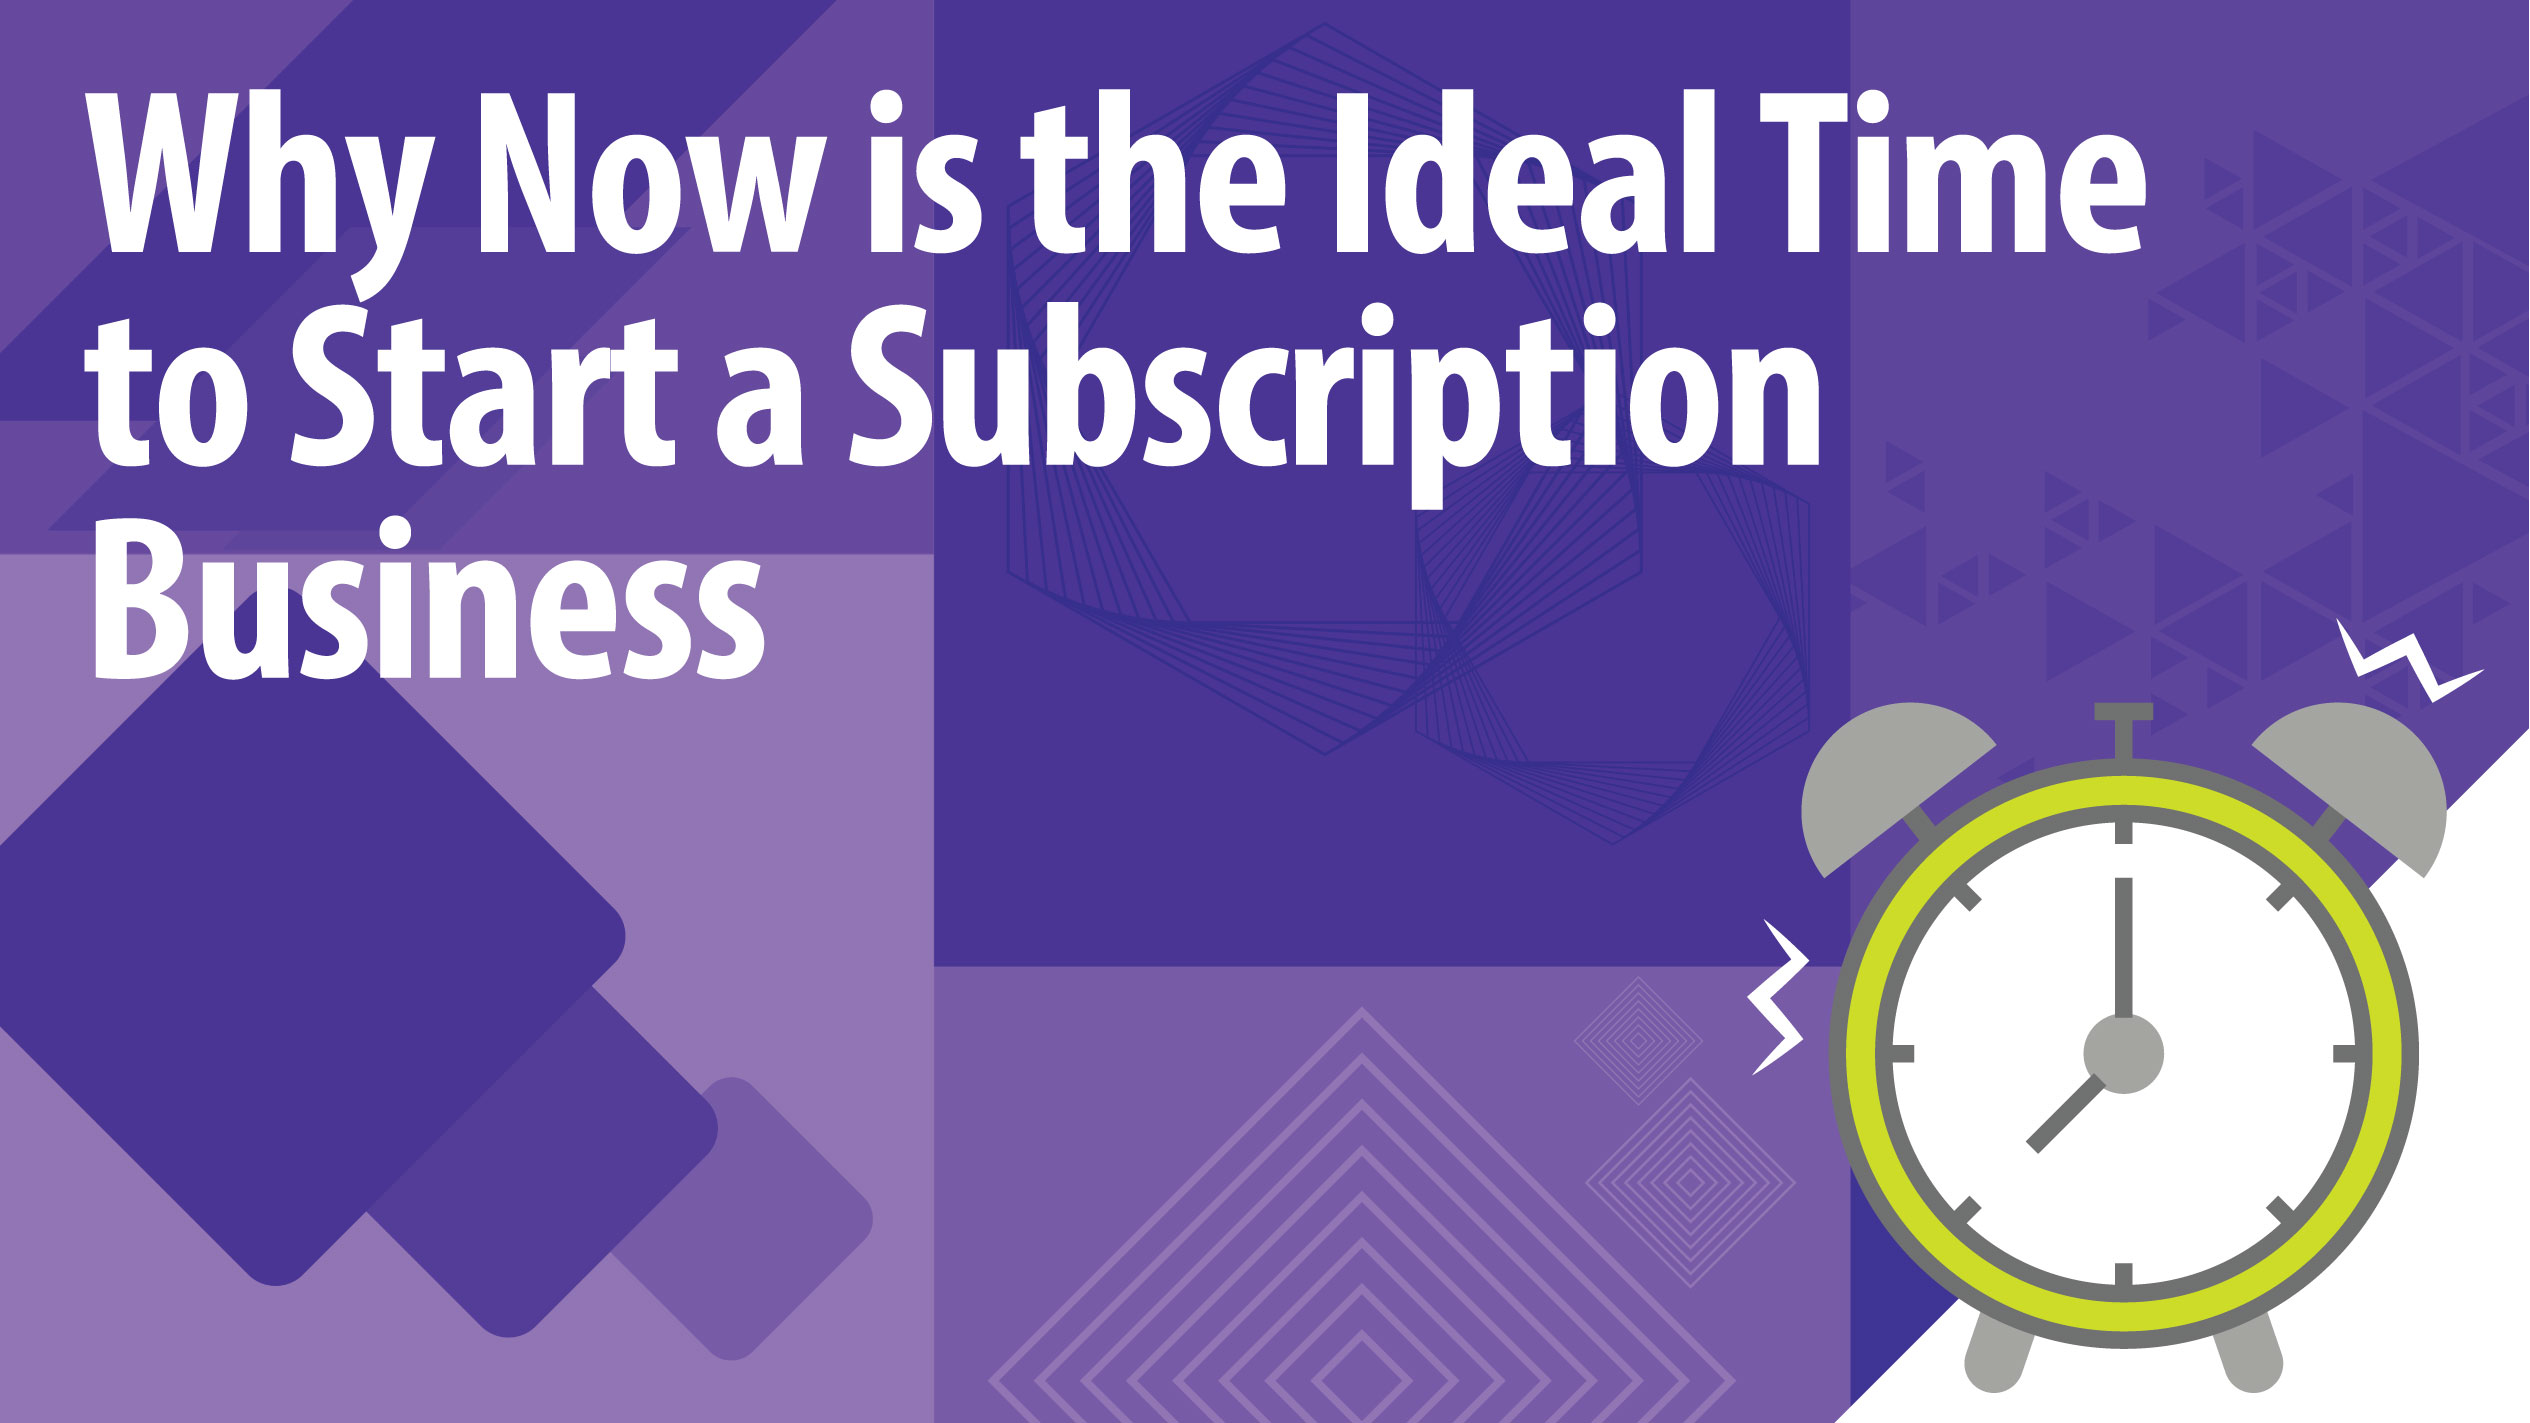 Why Now is the Ideal Time to Start a Subscription Business